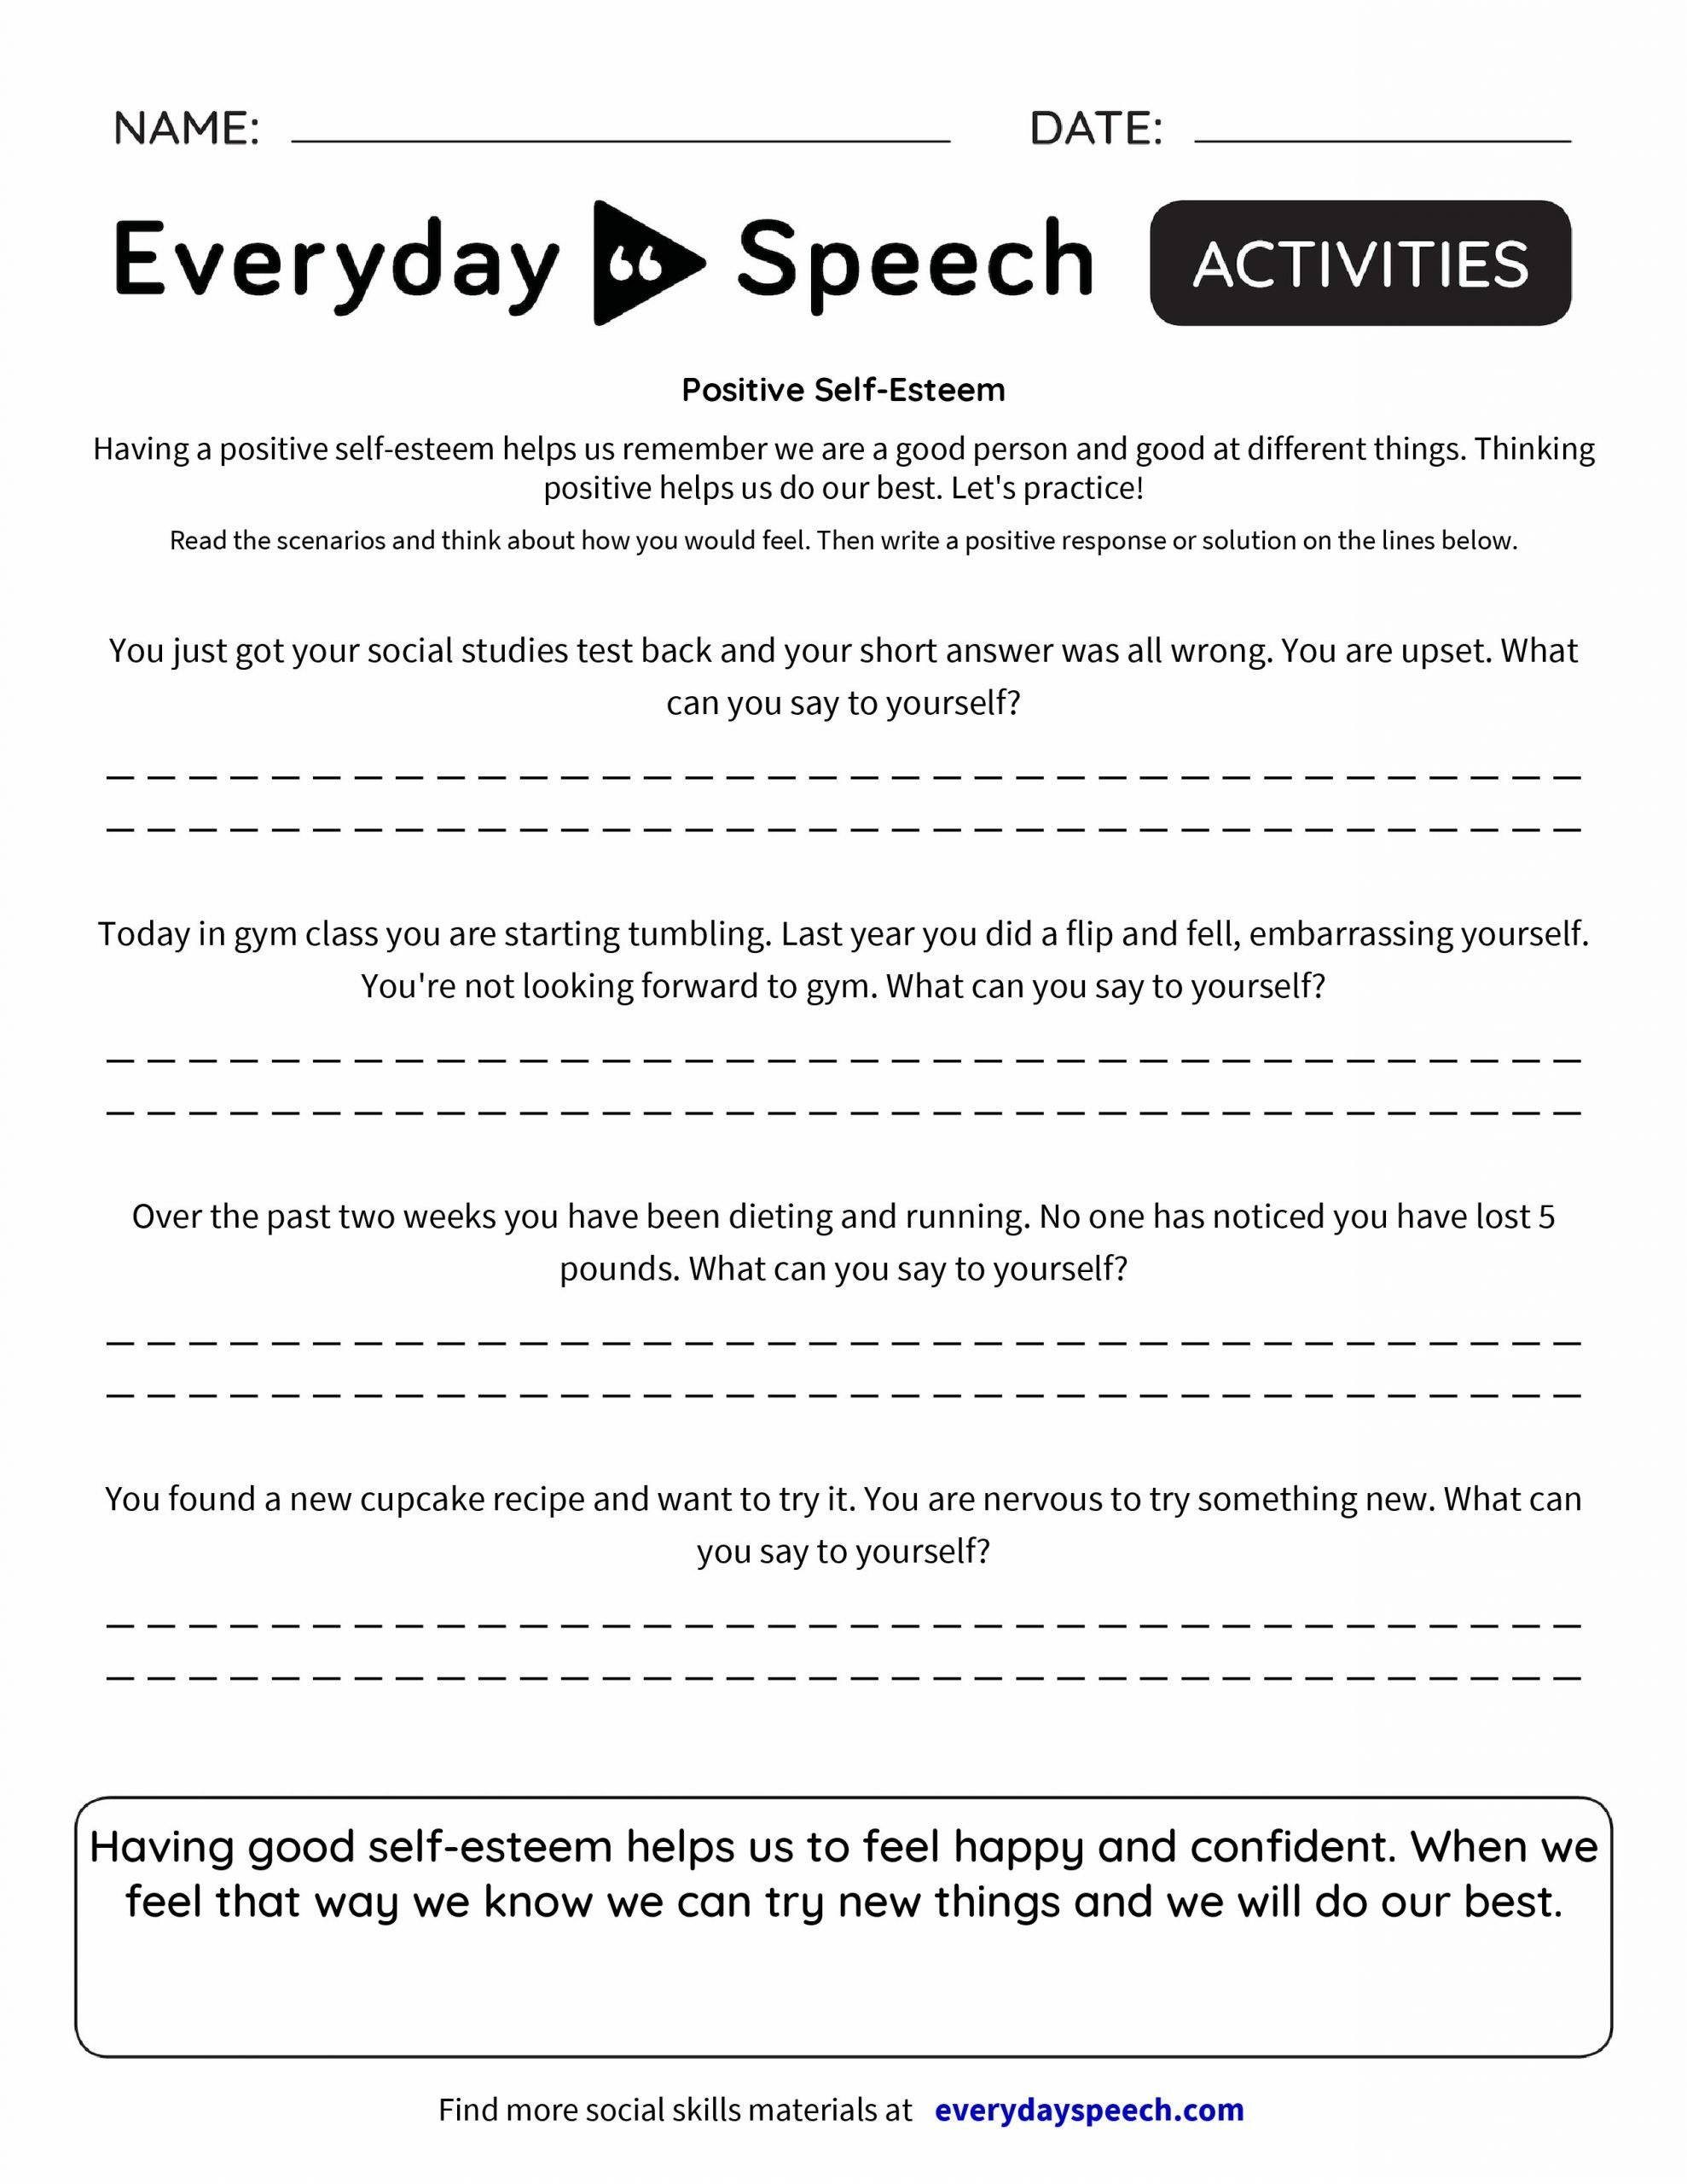 self esteem worksheets pdf positive self esteem everyday speech everyday speech of self esteem worksheets pdf scaled